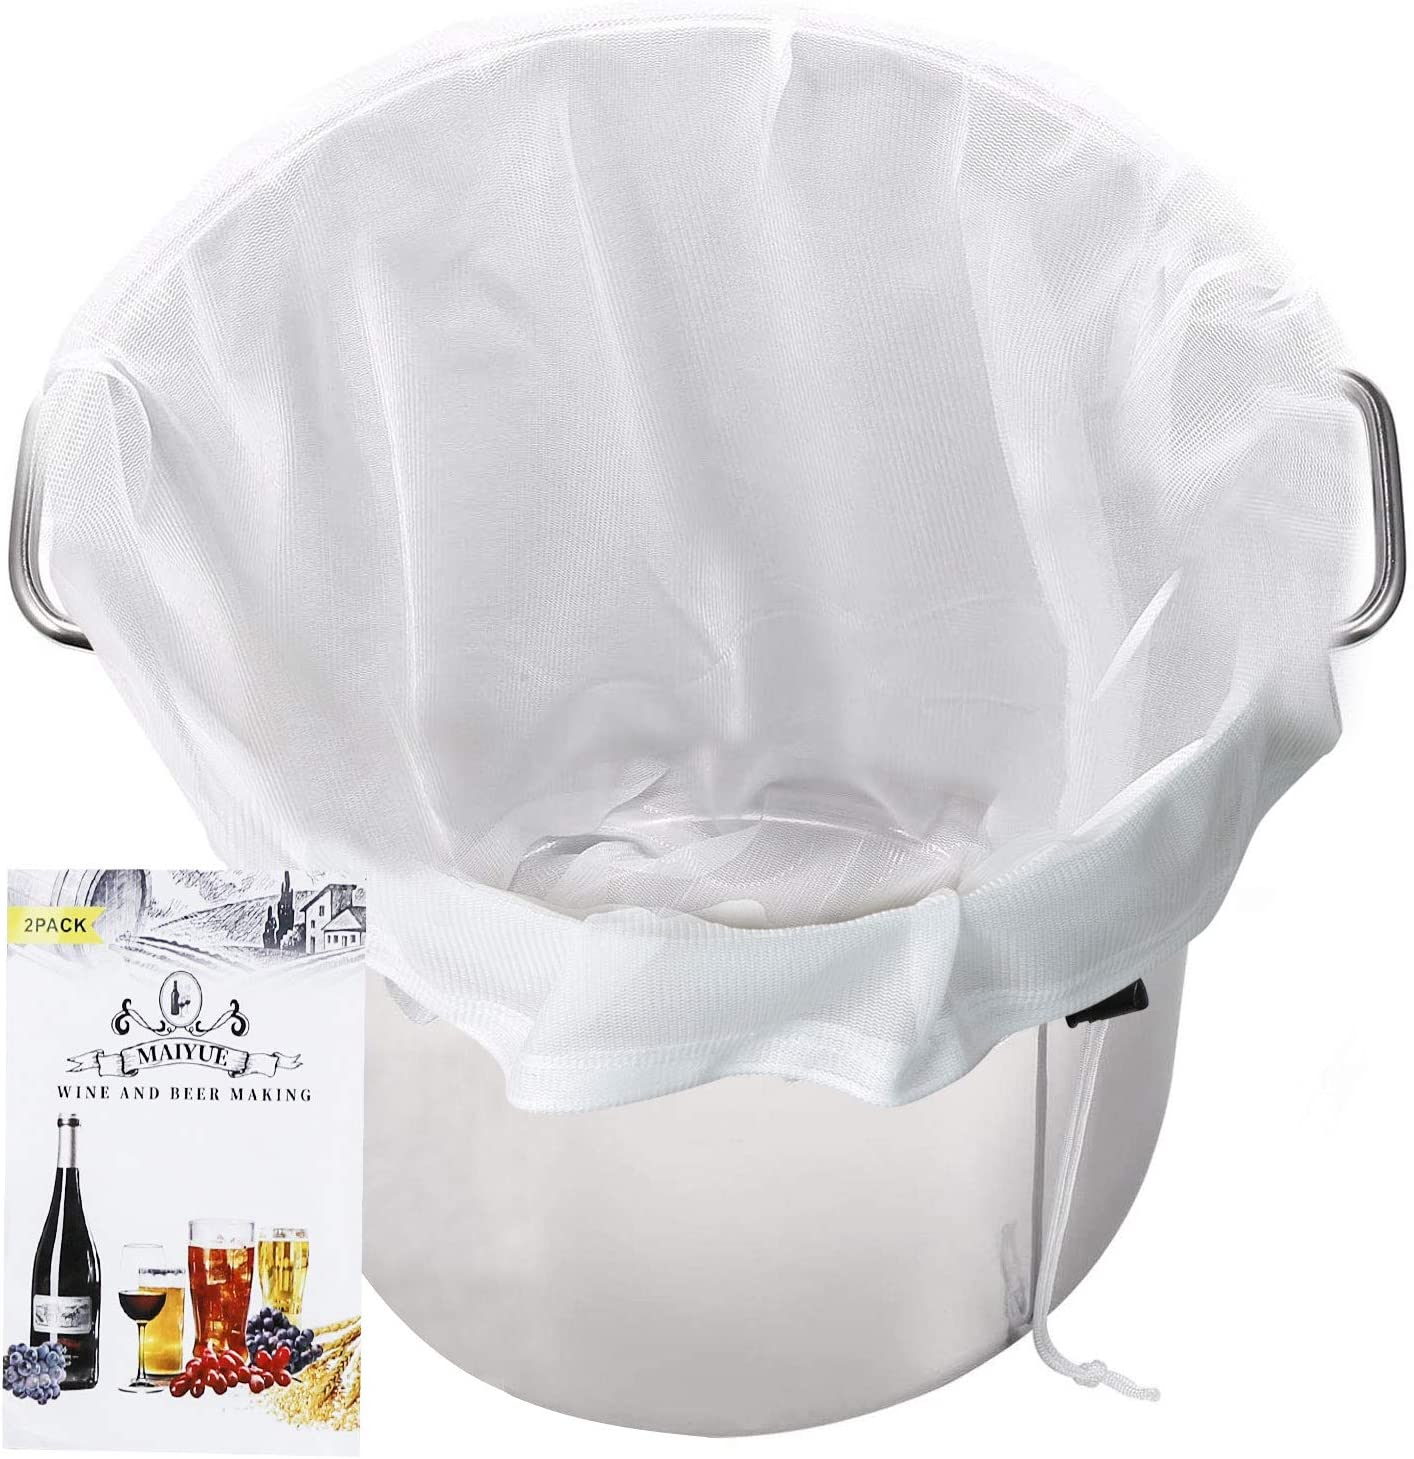 MAIYUE Brew Bags Reusable 175 Micron Fine Mesh Bag, All Purpose Food Strainer - Food Grade BPA-Free - Ultra Strong Fine Nylon Mesh, Grape Wine Press Drawstring Straining Brew in a Bag(2 pcs-22